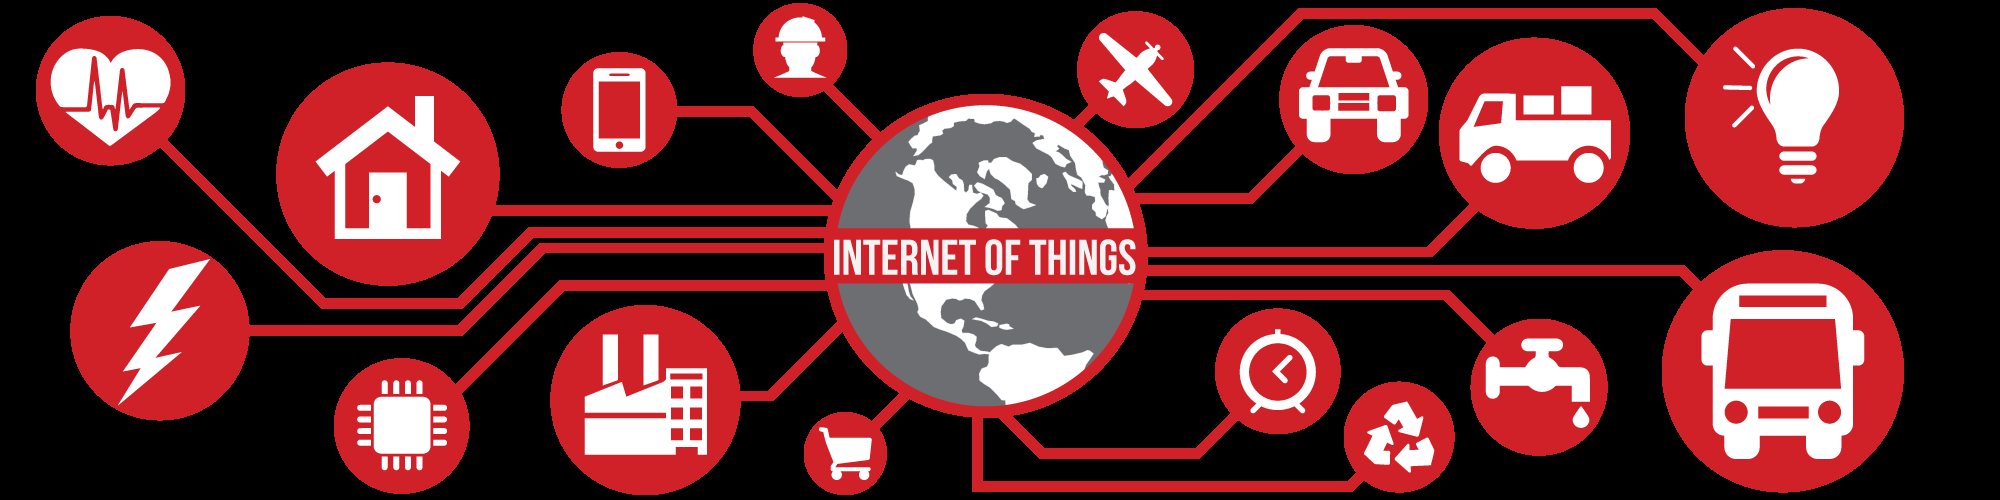 The Internet of Things (IoT) Tingenes internett 1 1 http://community.arm.